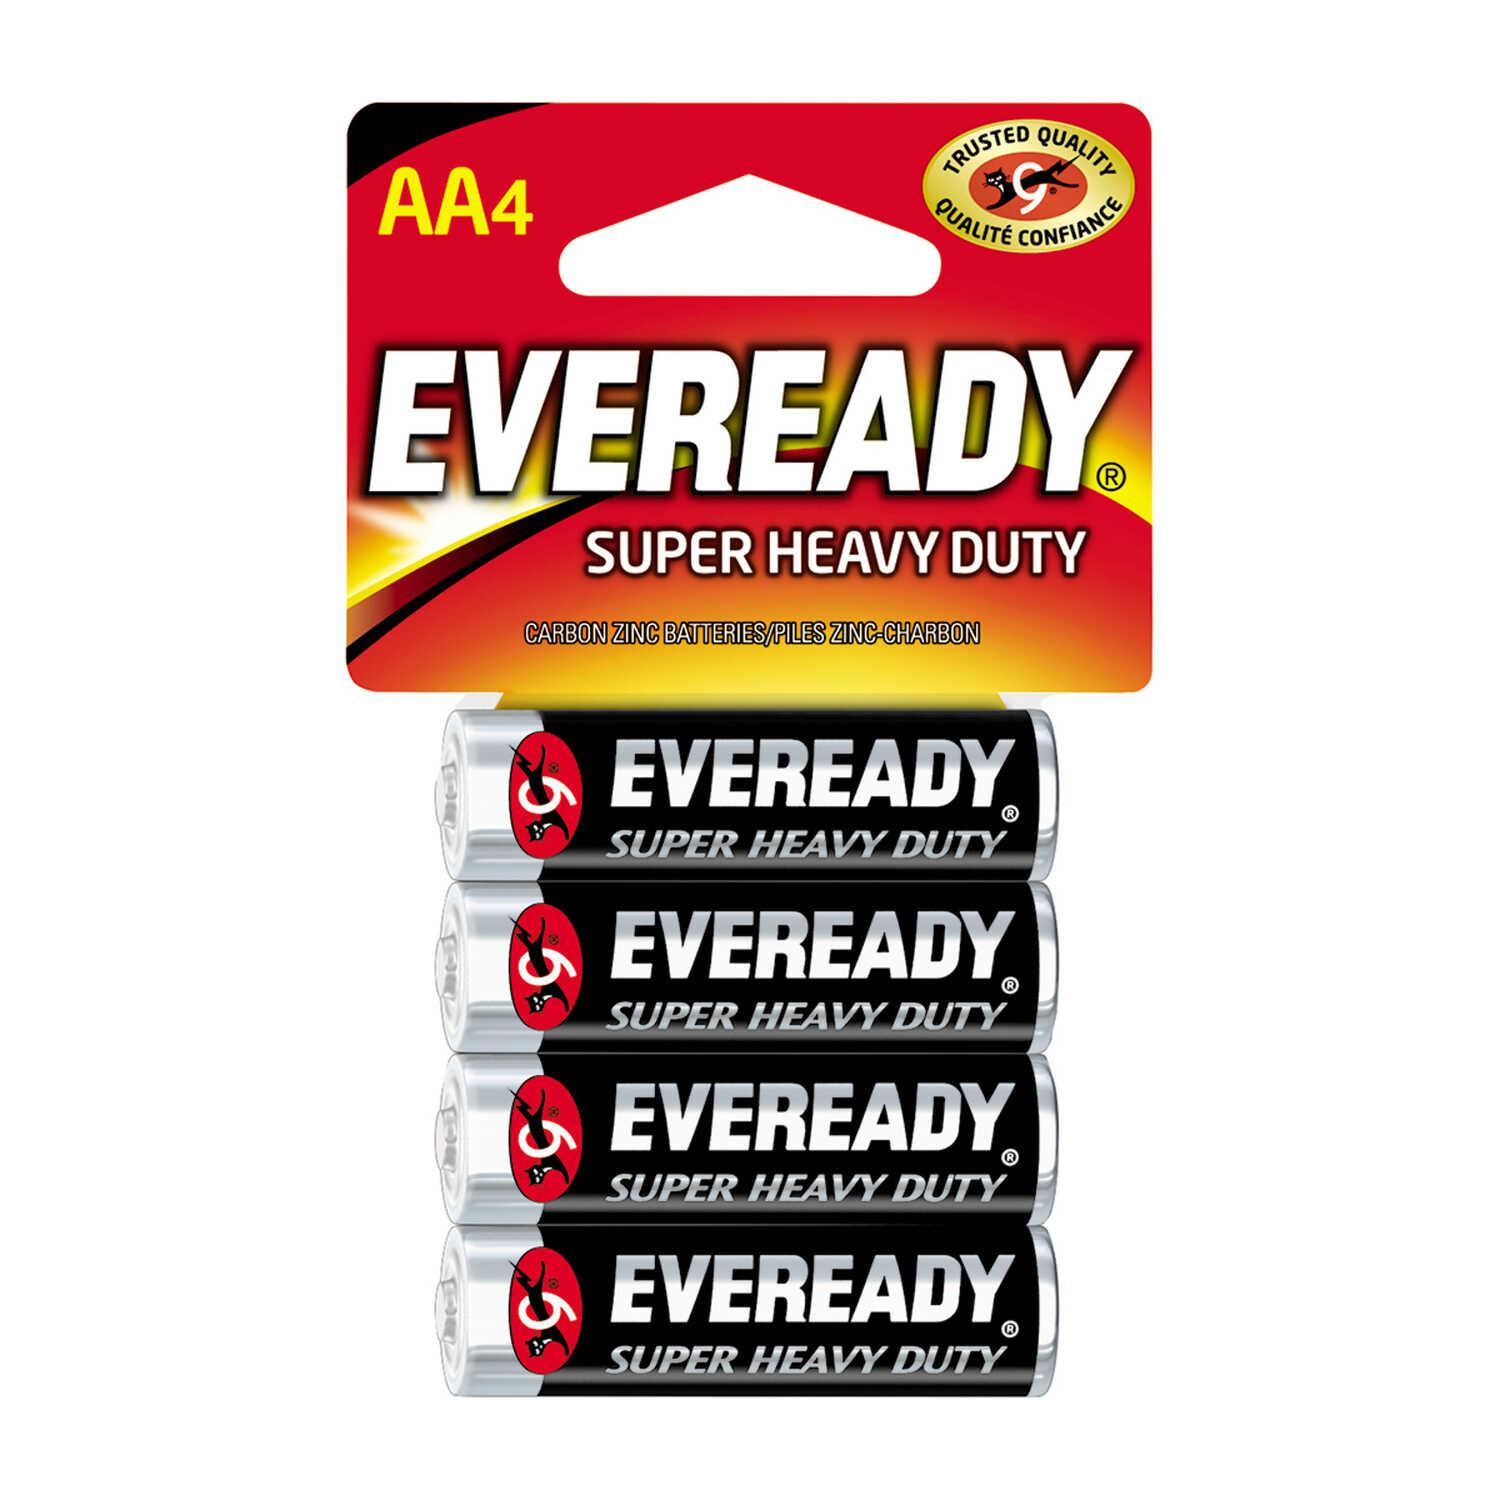 Eveready  Super Heavy Duty  AA  Zinc Carbon  Batteries  4 pk Carded  1.5 volts